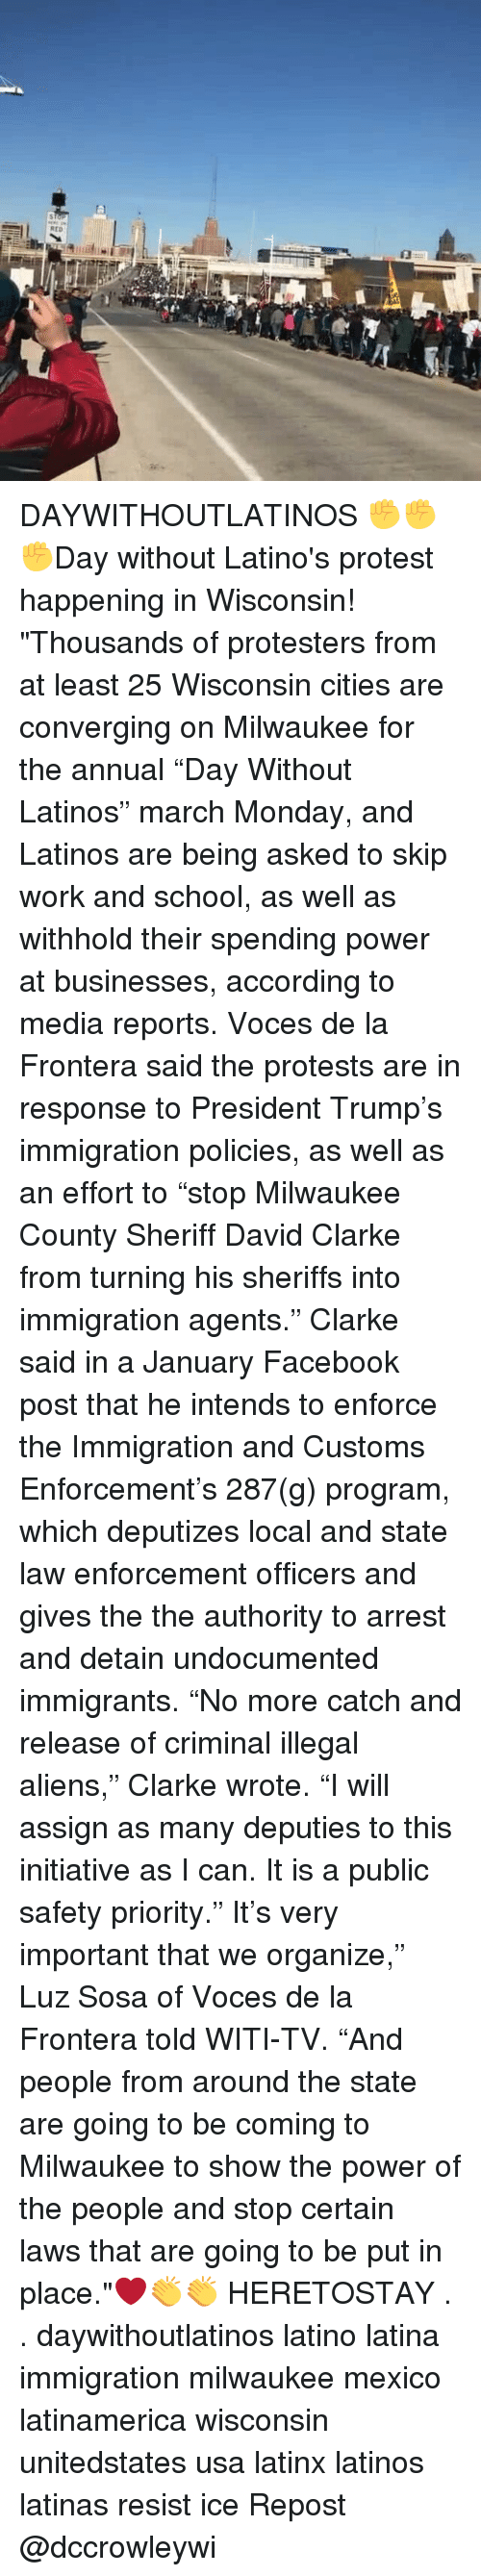 "Illegal Alien: RED DAYWITHOUTLATINOS ✊✊✊Day without Latino's protest happening in Wisconsin! ""Thousands of protesters from at least 25 Wisconsin cities are converging on Milwaukee for the annual ""Day Without Latinos"" march Monday, and Latinos are being asked to skip work and school, as well as withhold their spending power at businesses, according to media reports. Voces de la Frontera said the protests are in response to President Trump's immigration policies, as well as an effort to ""stop Milwaukee County Sheriff David Clarke from turning his sheriffs into immigration agents."" Clarke said in a January Facebook post that he intends to enforce the Immigration and Customs Enforcement's 287(g) program, which deputizes local and state law enforcement officers and gives the the authority to arrest and detain undocumented immigrants. ""No more catch and release of criminal illegal aliens,"" Clarke wrote. ""I will assign as many deputies to this initiative as I can. It is a public safety priority."" It's very important that we organize,"" Luz Sosa of Voces de la Frontera told WITI-TV. ""And people from around the state are going to be coming to Milwaukee to show the power of the people and stop certain laws that are going to be put in place.""❤👏👏 HERETOSTAY . . daywithoutlatinos latino latina immigration milwaukee mexico latinamerica wisconsin unitedstates usa latinx latinos latinas resist ice Repost @dccrowleywi"